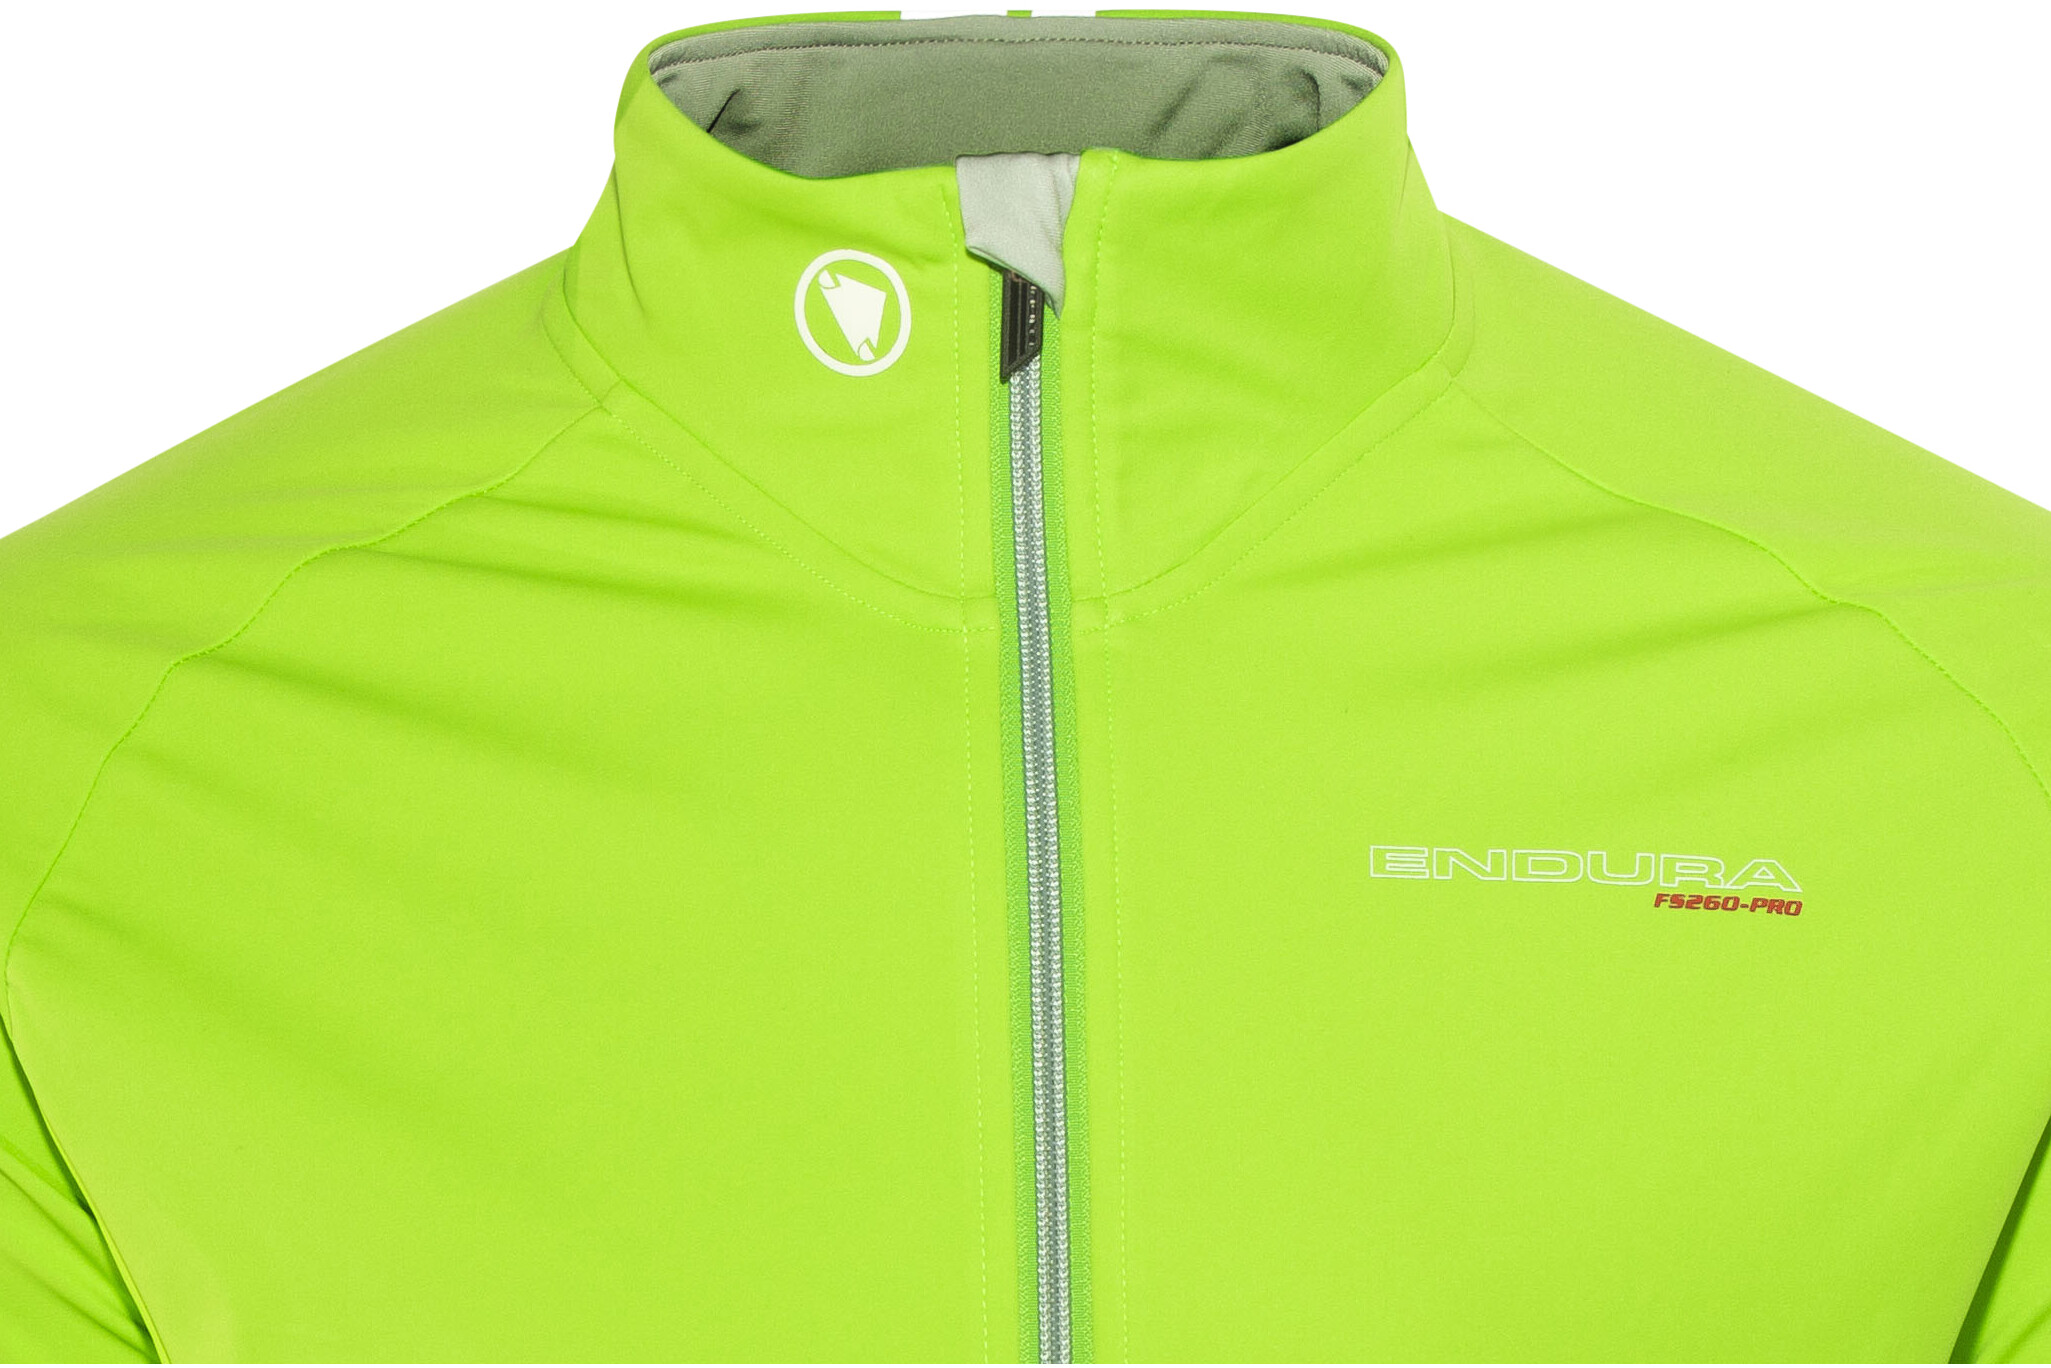 7a0054d10 Endura FS260-Pro Jetstream Bike Jersey Longsleeve Men green at ...